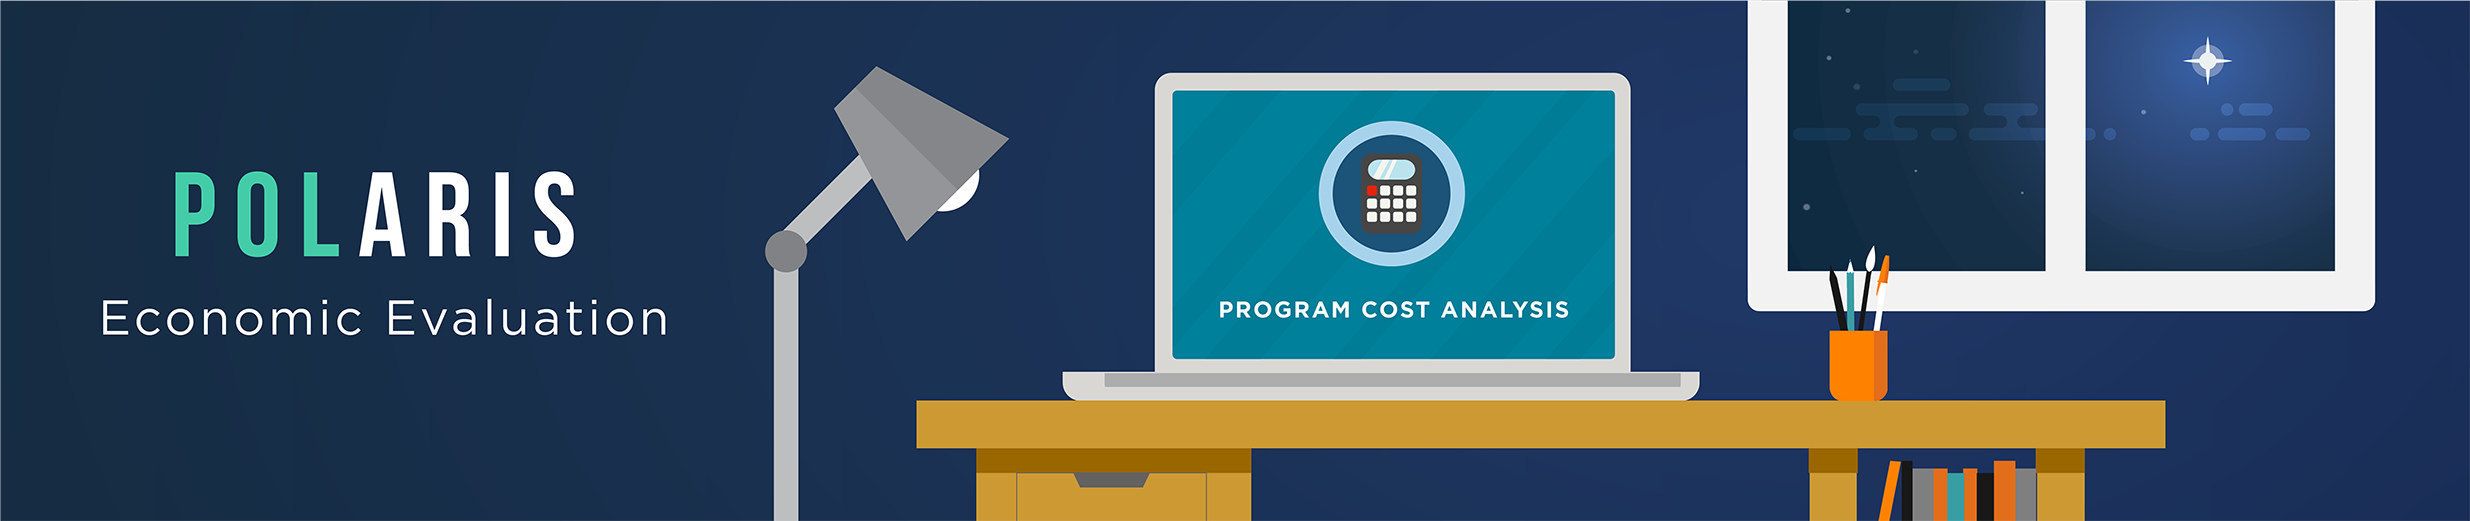 Banner at the the top of the page that says 'POLARIS Program Cost Analysis' and has an illustration of a laptop on a desk with a screen that includes an icon of a calculator